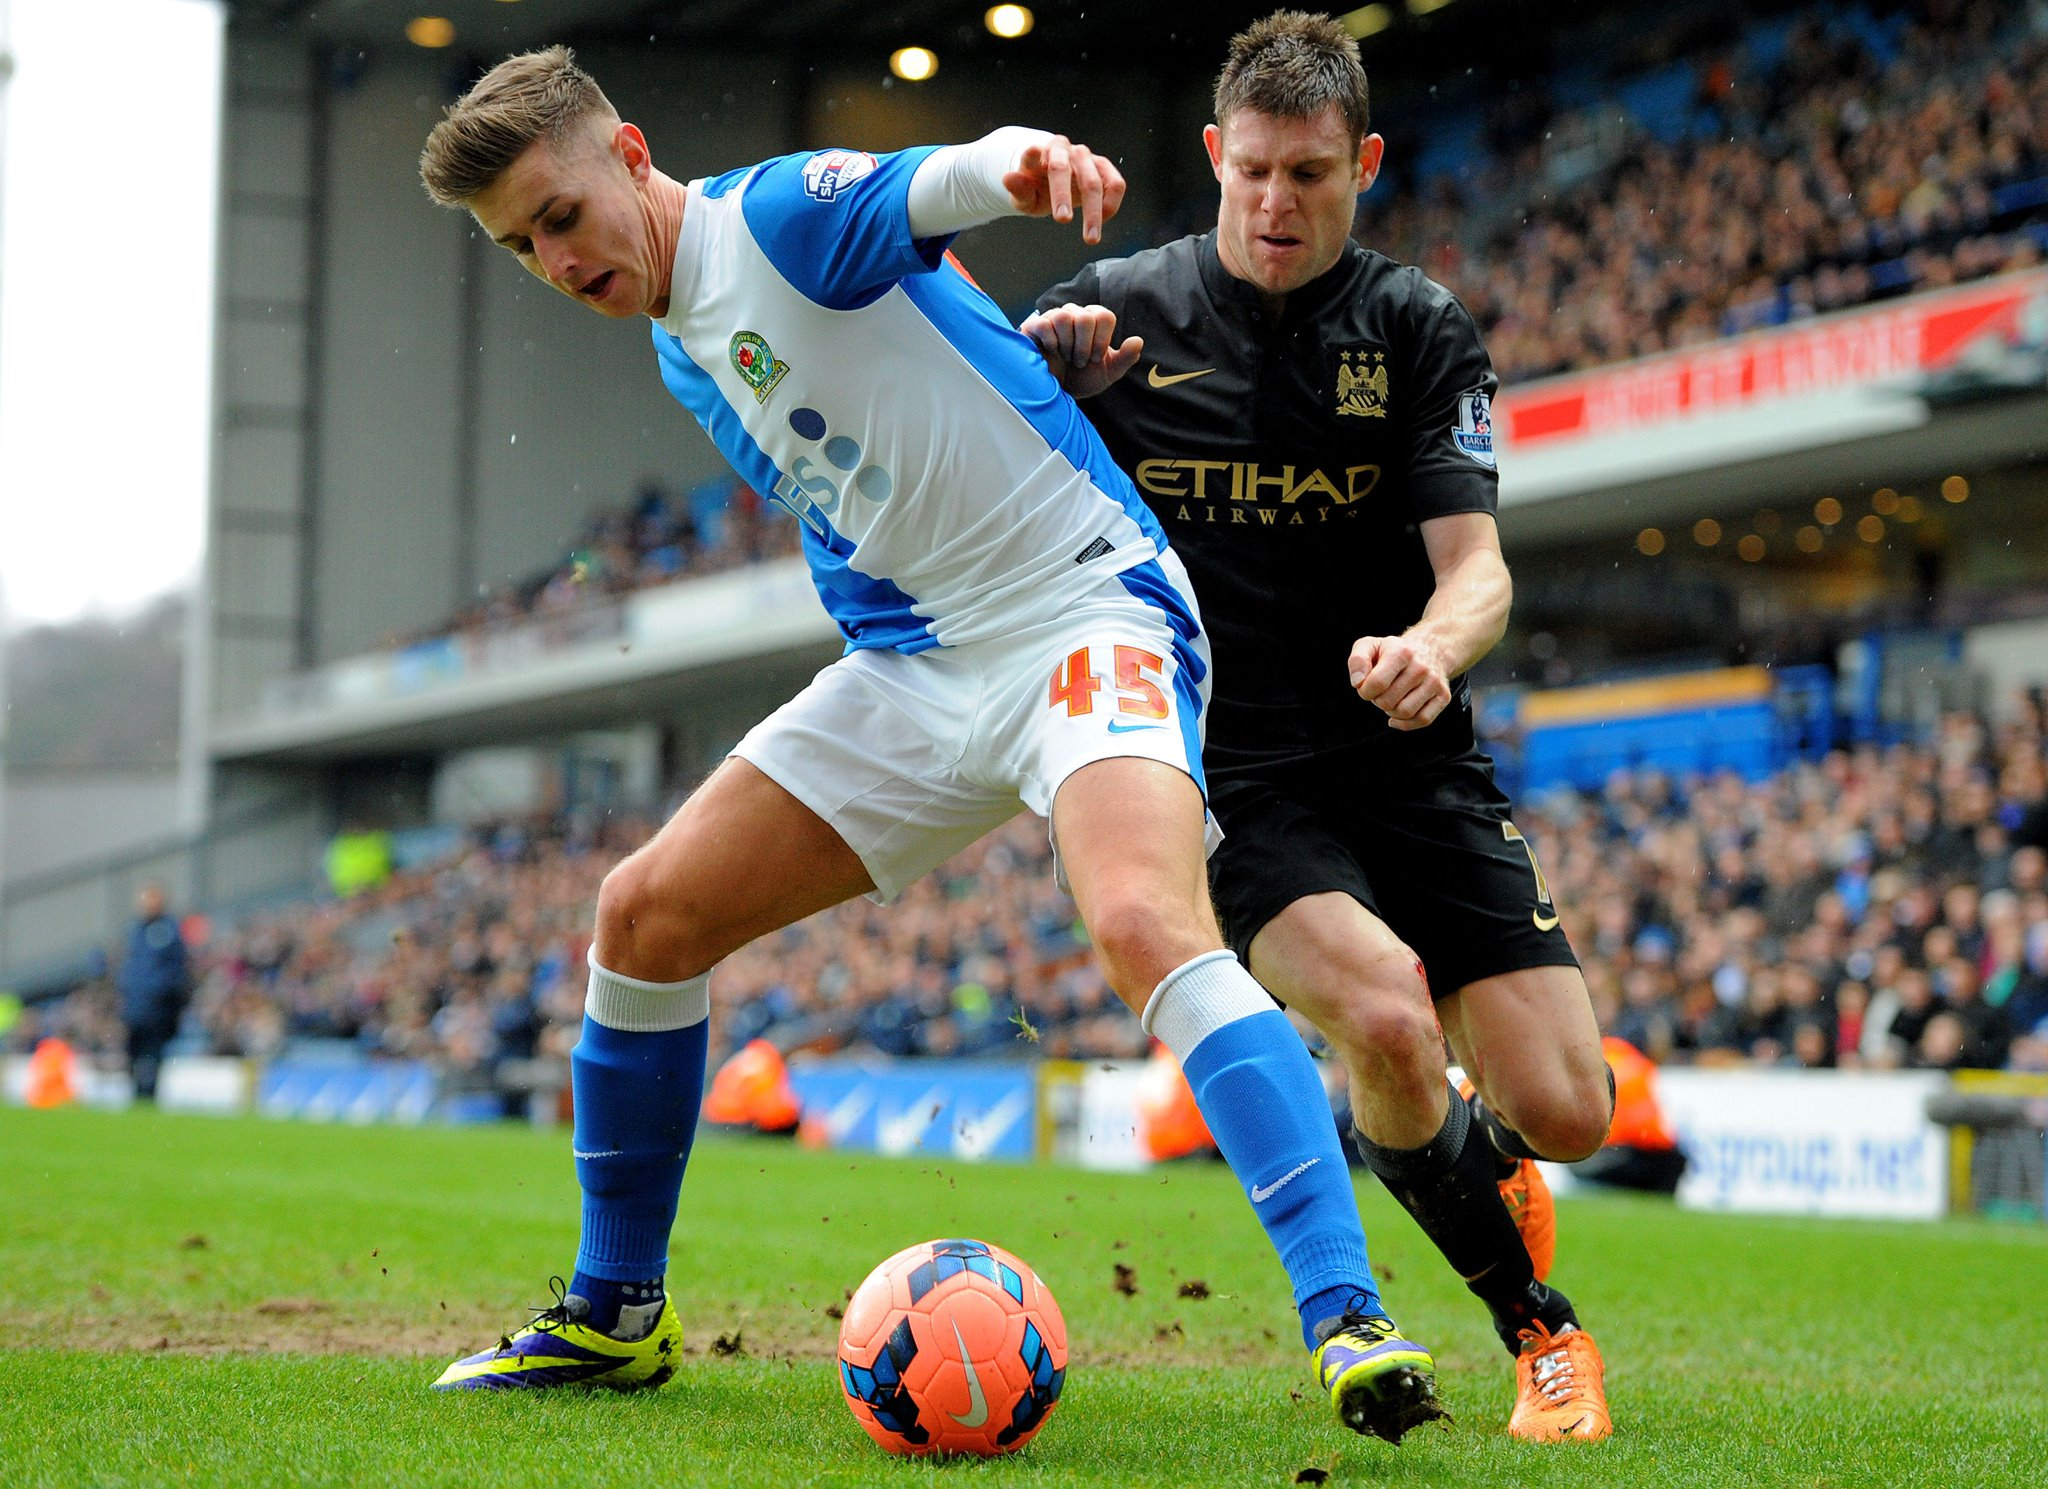 Battling Blackburn - James Milner & City had to fight all the way in the FA Cup 3rd Round tie  Courtesy @MCFC